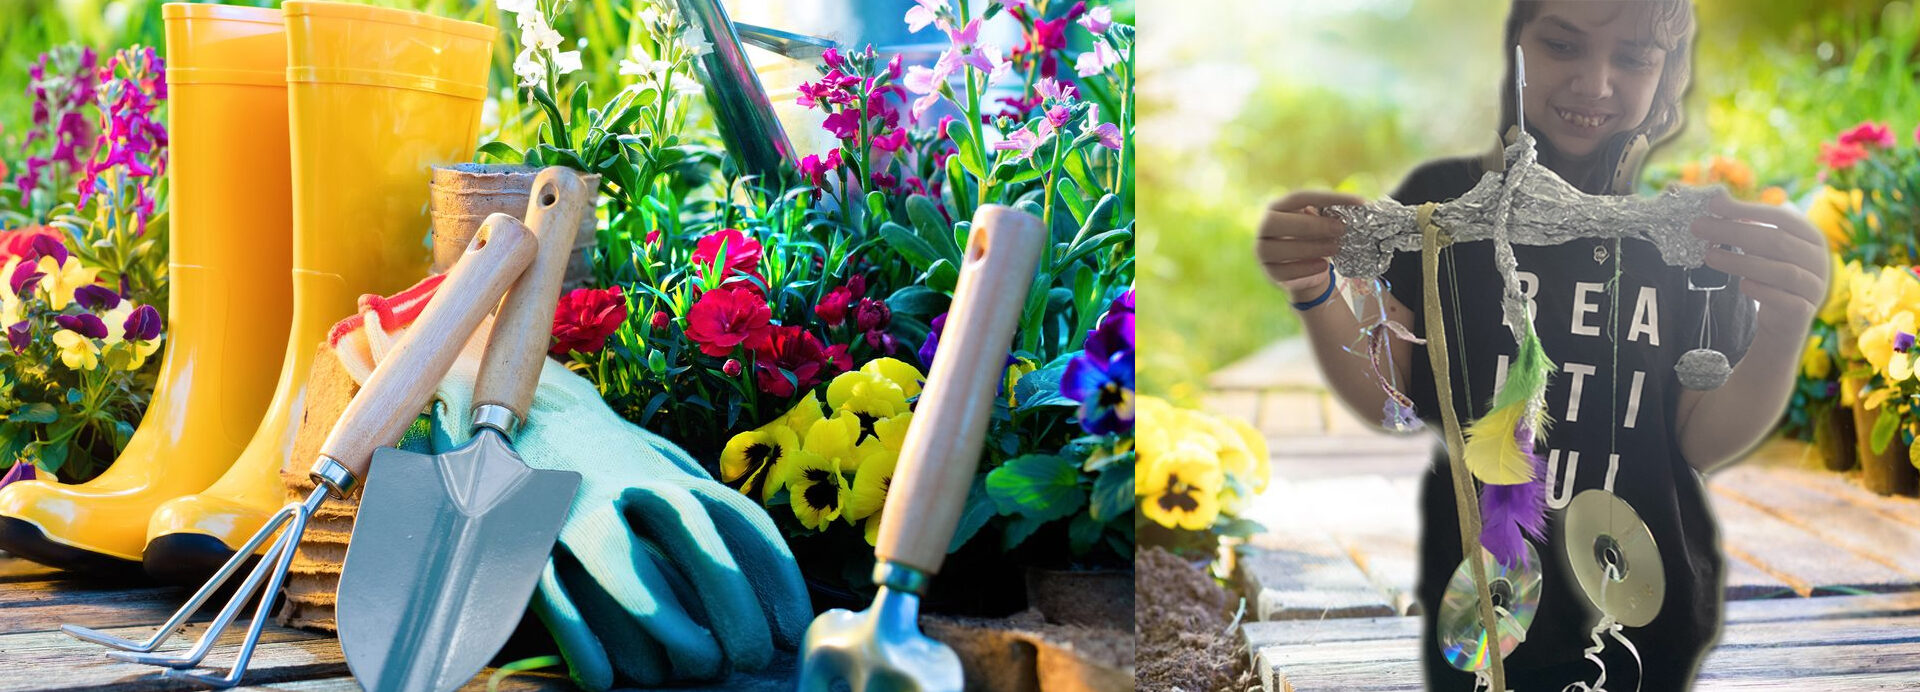 Live 3 Gardening Business Project